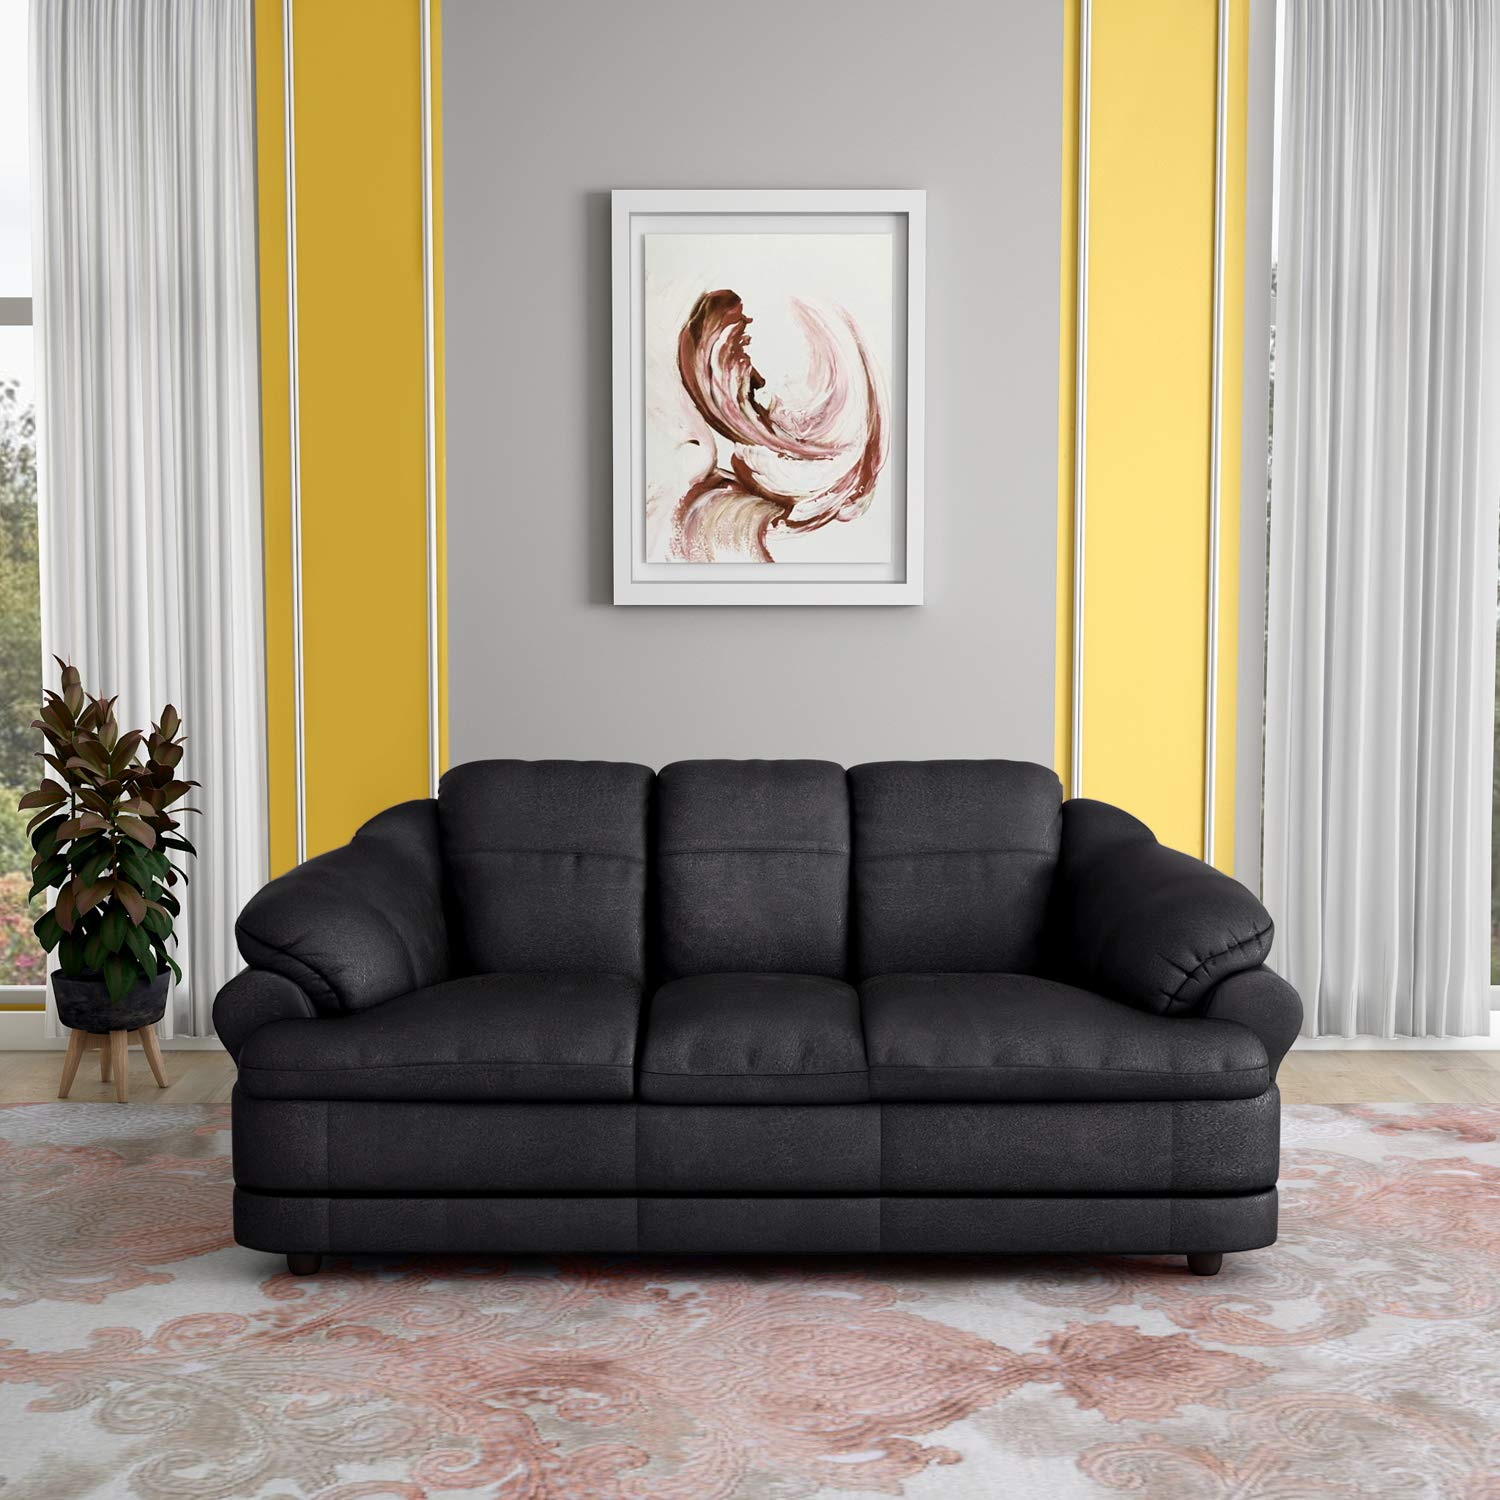 Godrej Interio Jineiro Three Seater Fabric Sectional Sofa (Matte